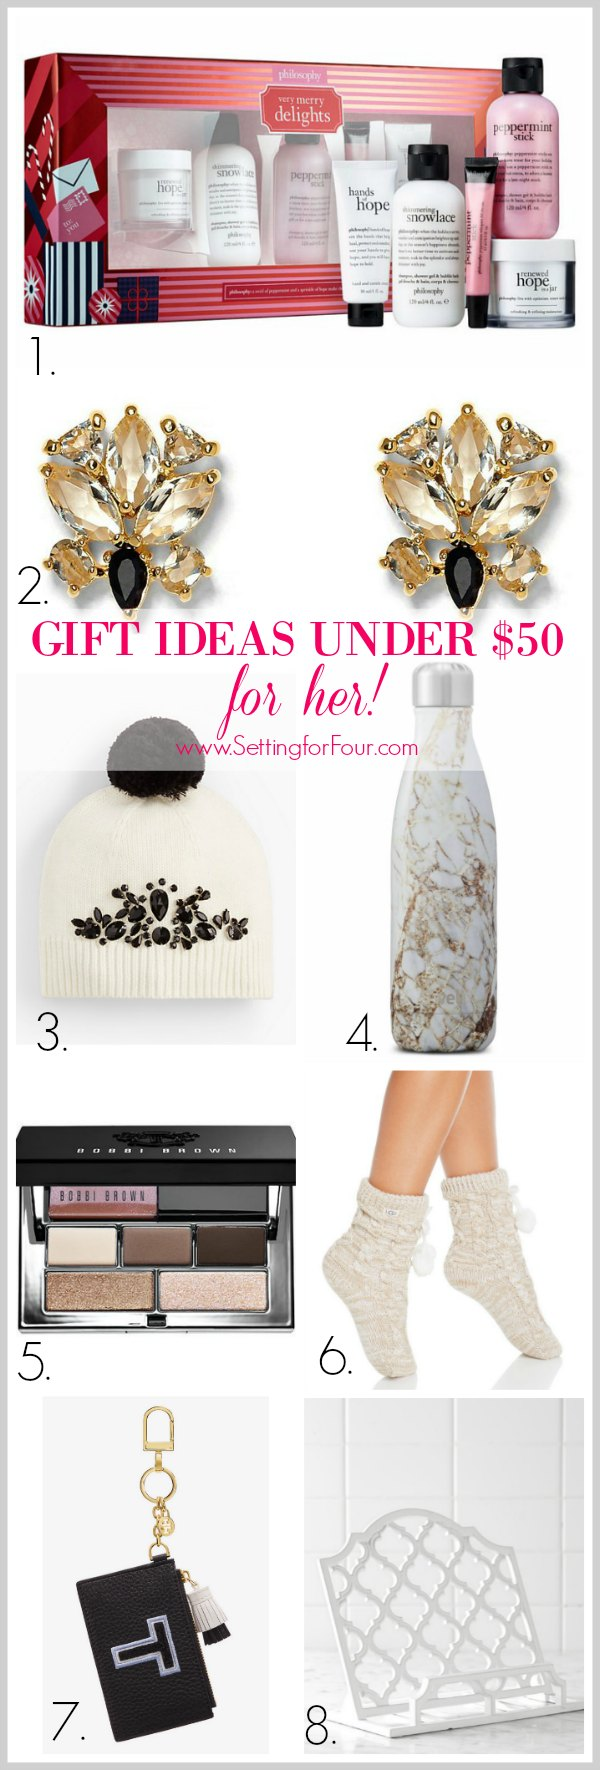 Gift giving doesn't have to break the bank! Take a look at these AMAZING gift ideas under 50 $ that will be sure to please her! Fashion, Beauty and Home Decor Ideas that you'll love to give! For Mom, Wife, Sister, Aunt, Grandmother, Niece, Girlfriend, Teacher, Neighbor.